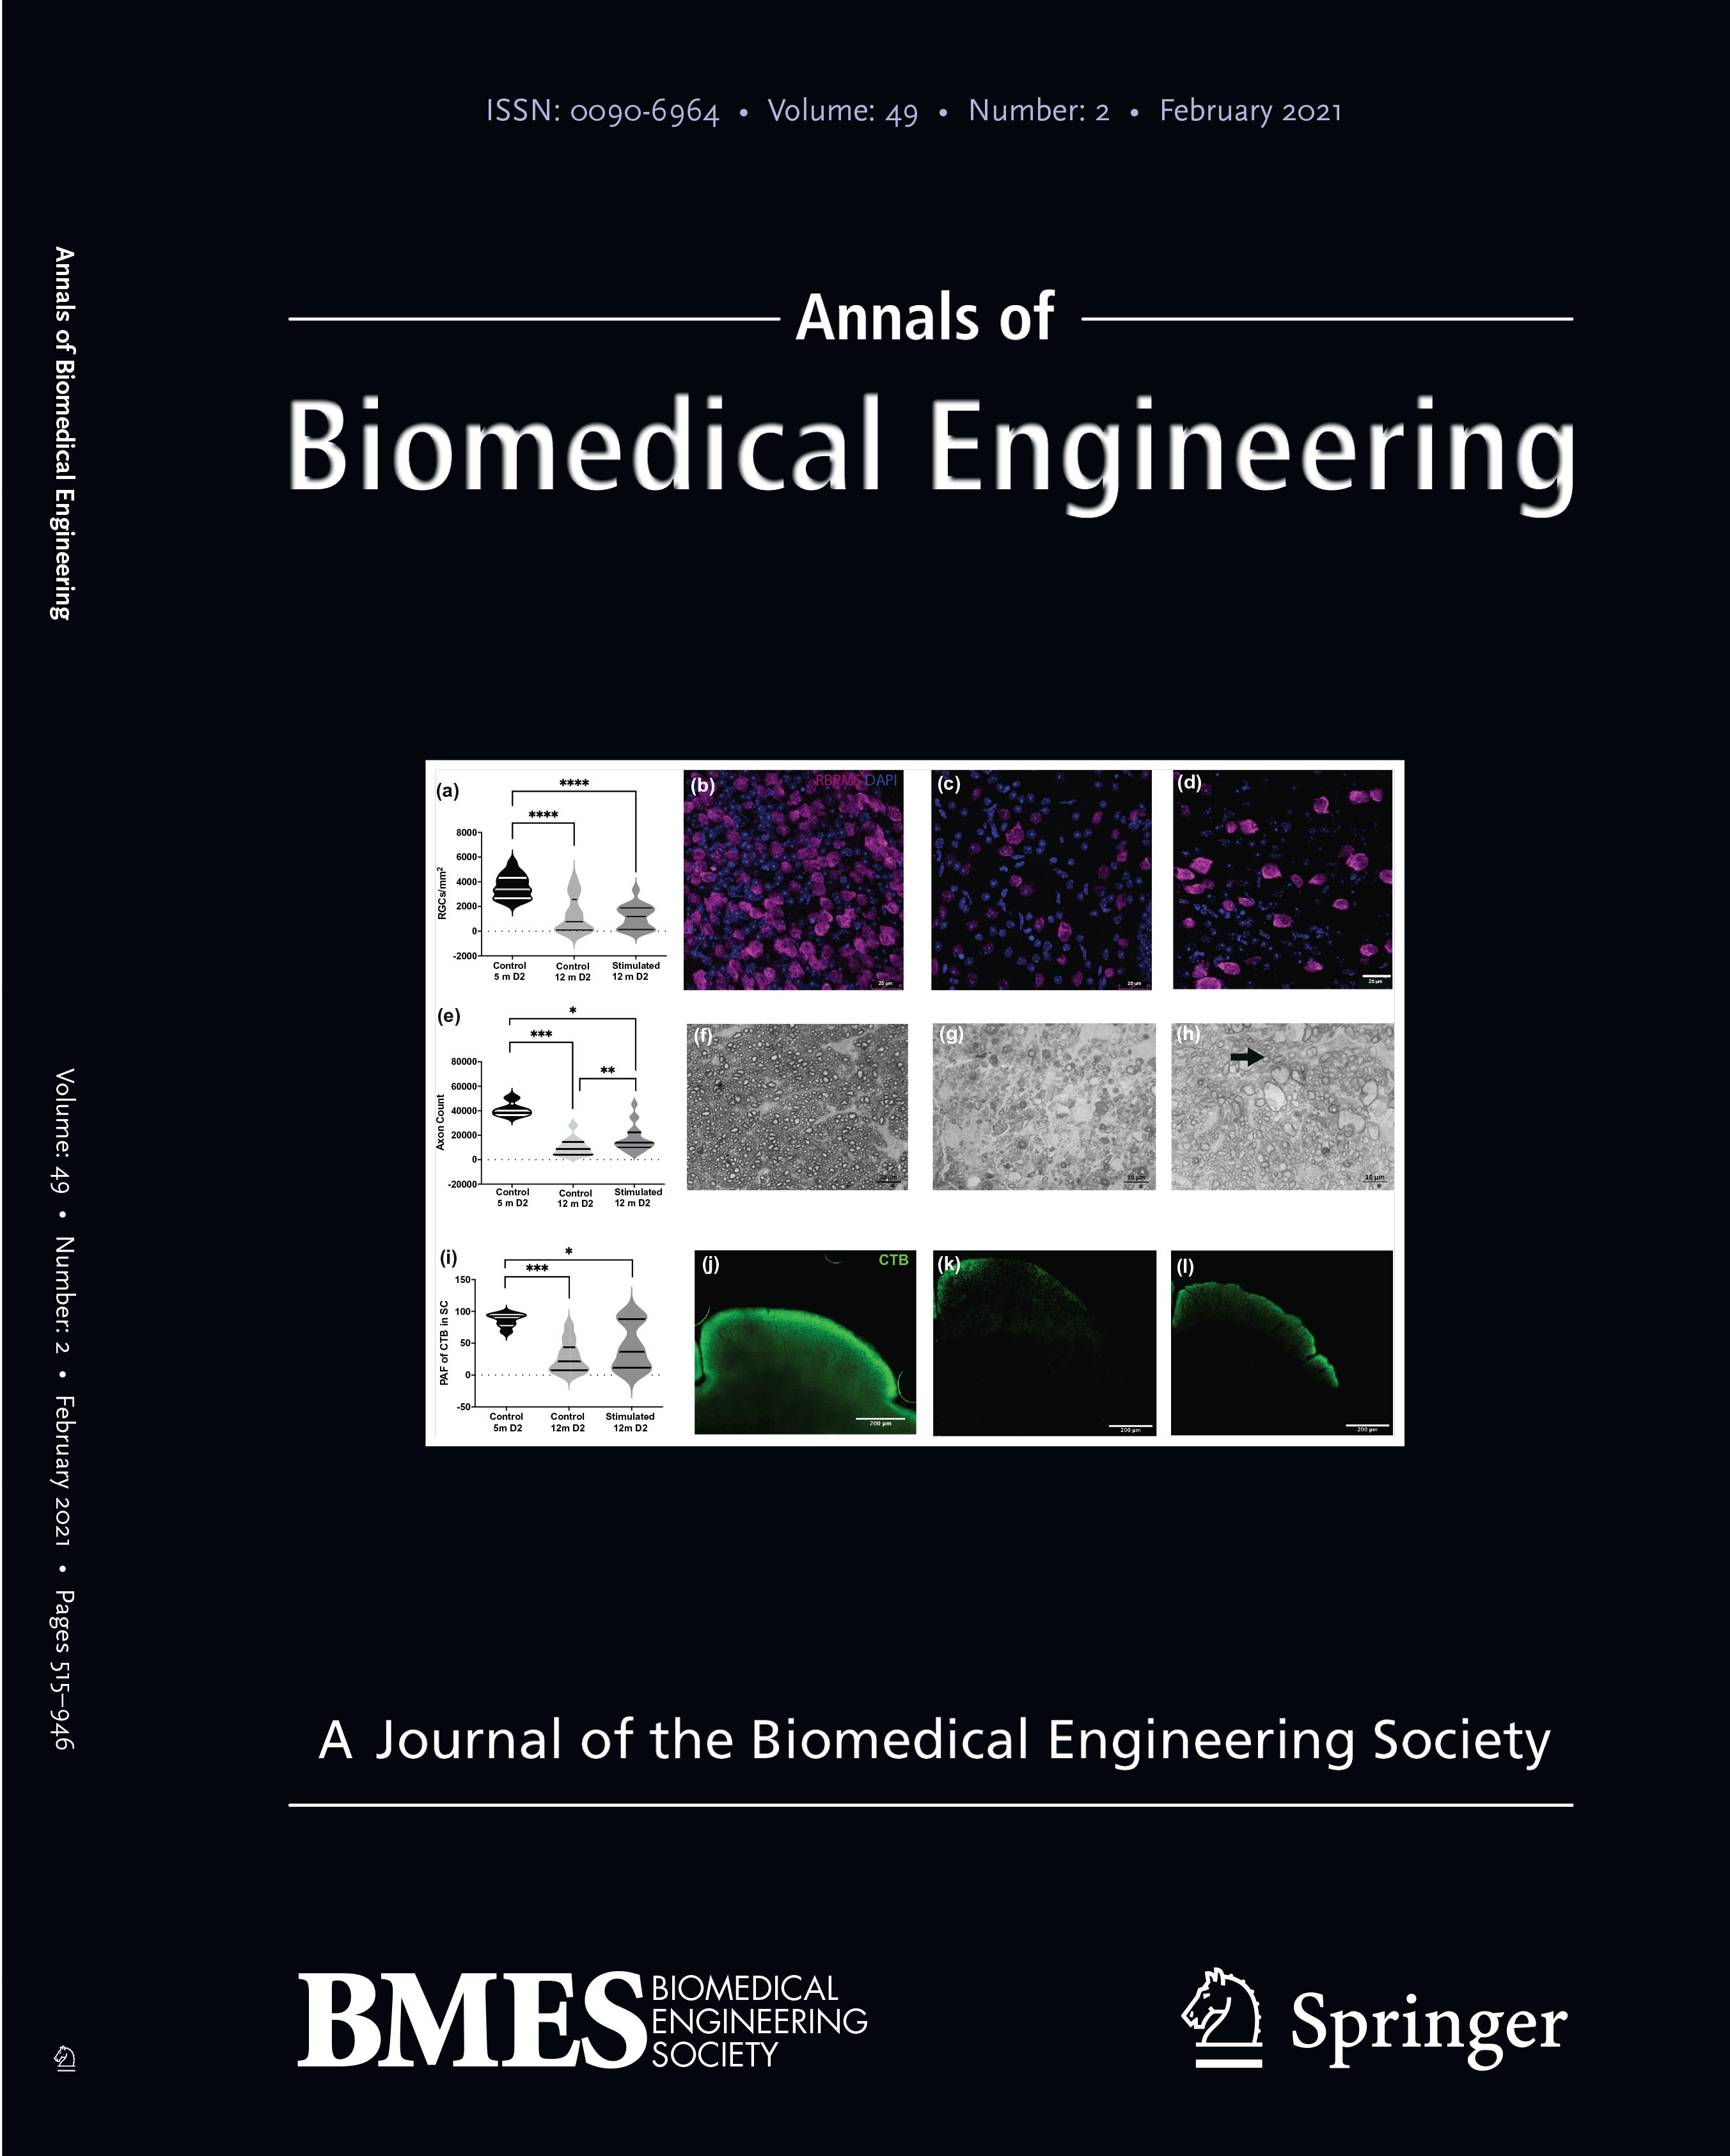 cover of research journal in BME